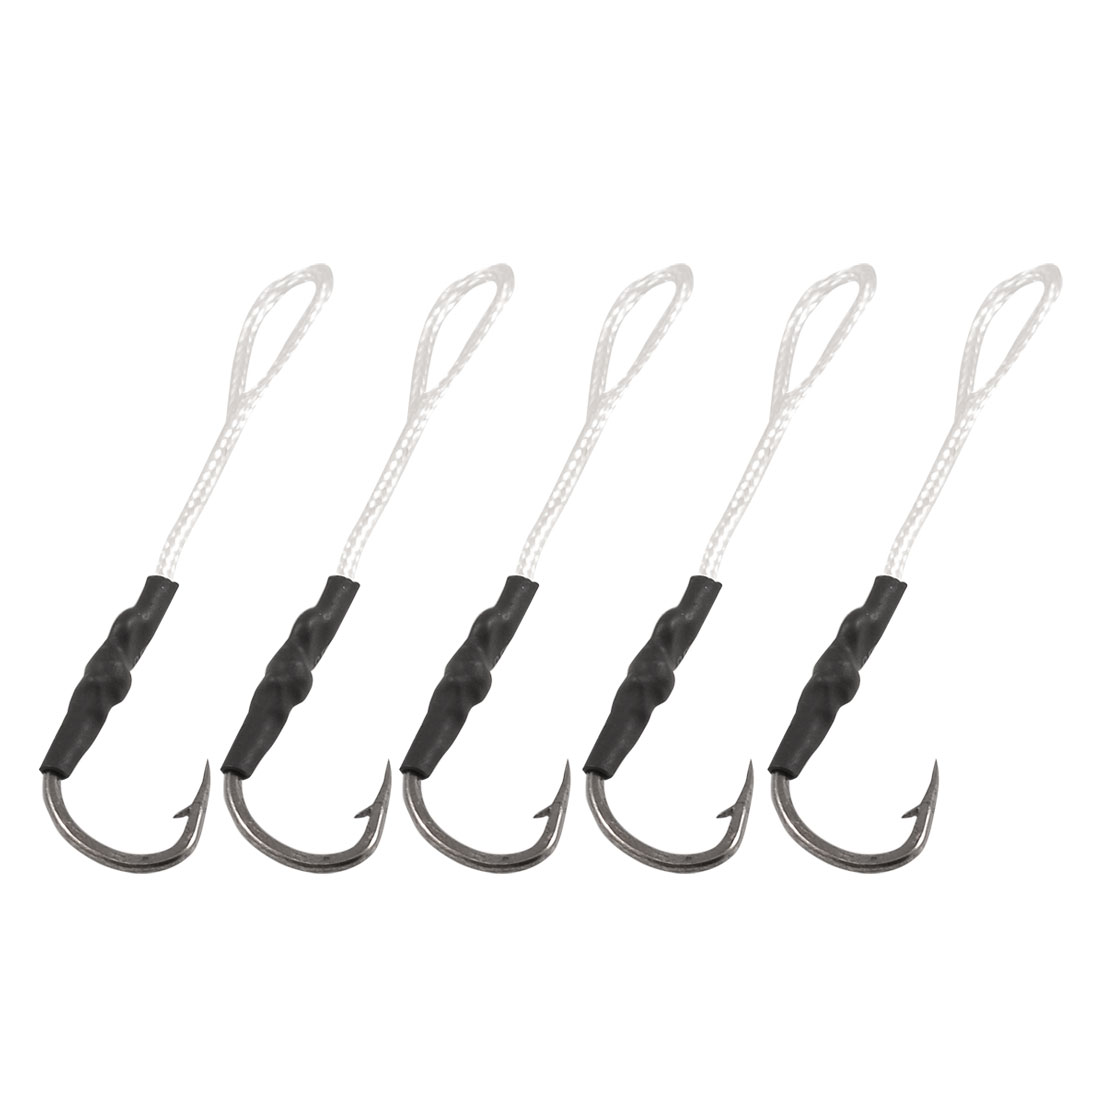 5 Pcs White Nylon String Metal Barb Fishing Tackle Fishhooks